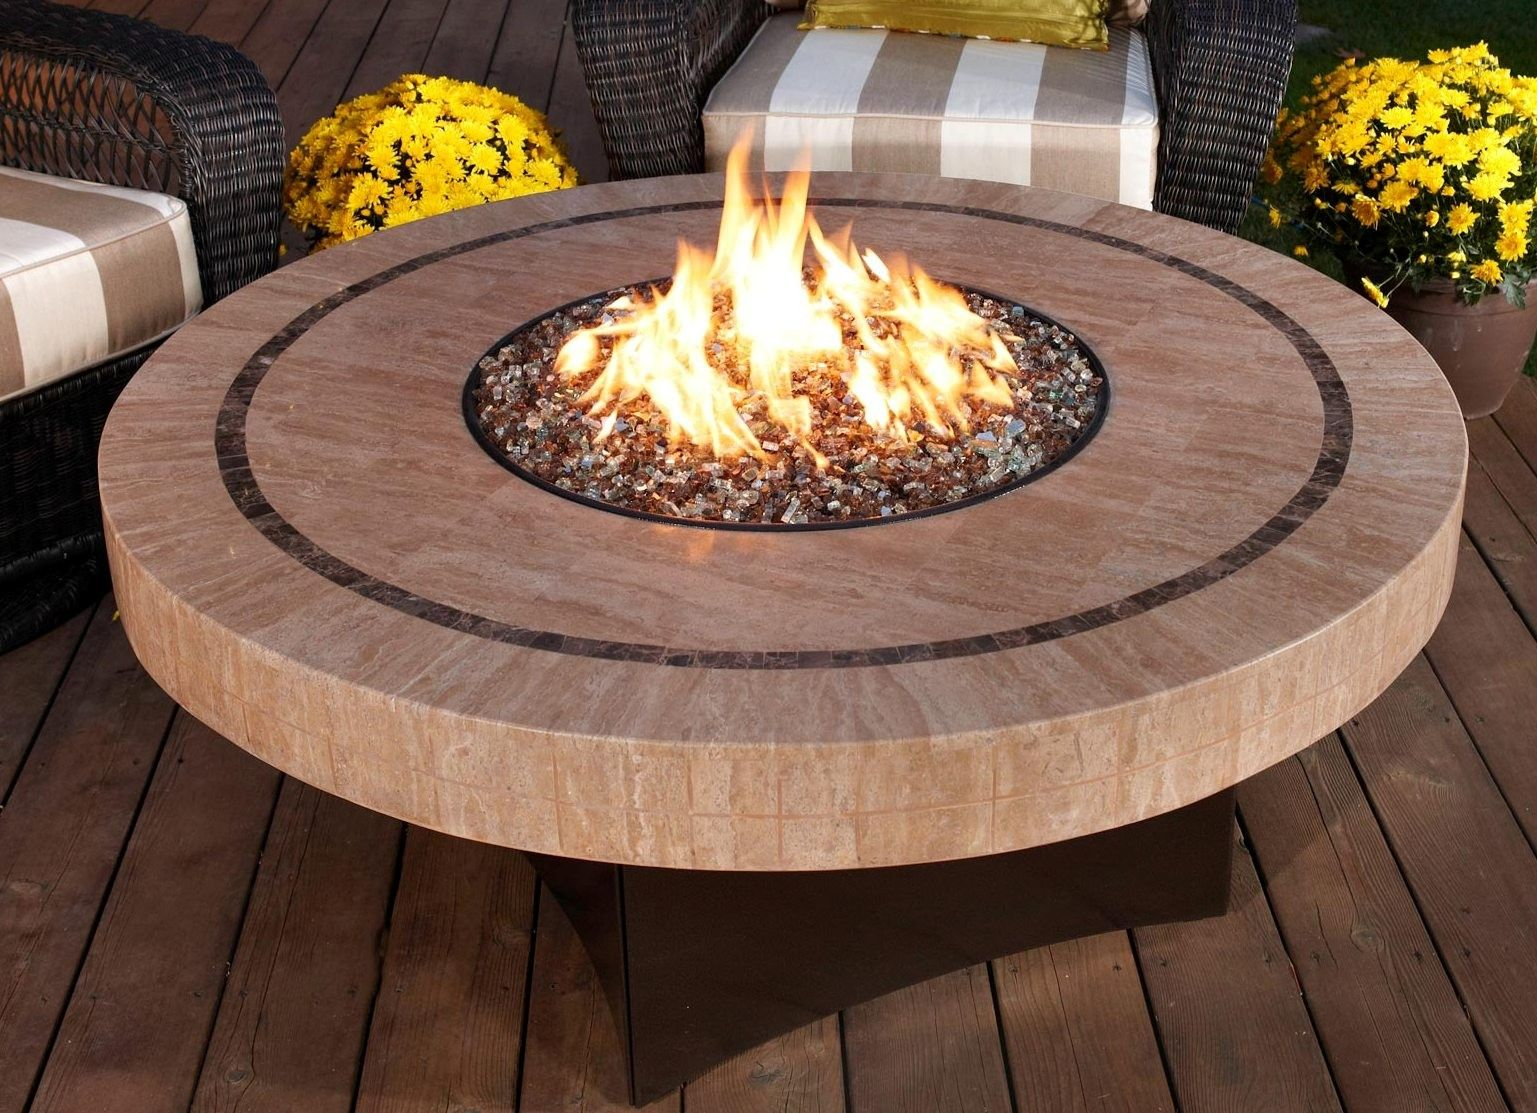 High Quality Gas Fire Pit Components Also Gas Fire Pit Construction Details Stone Fire  Pits, Gas Fire